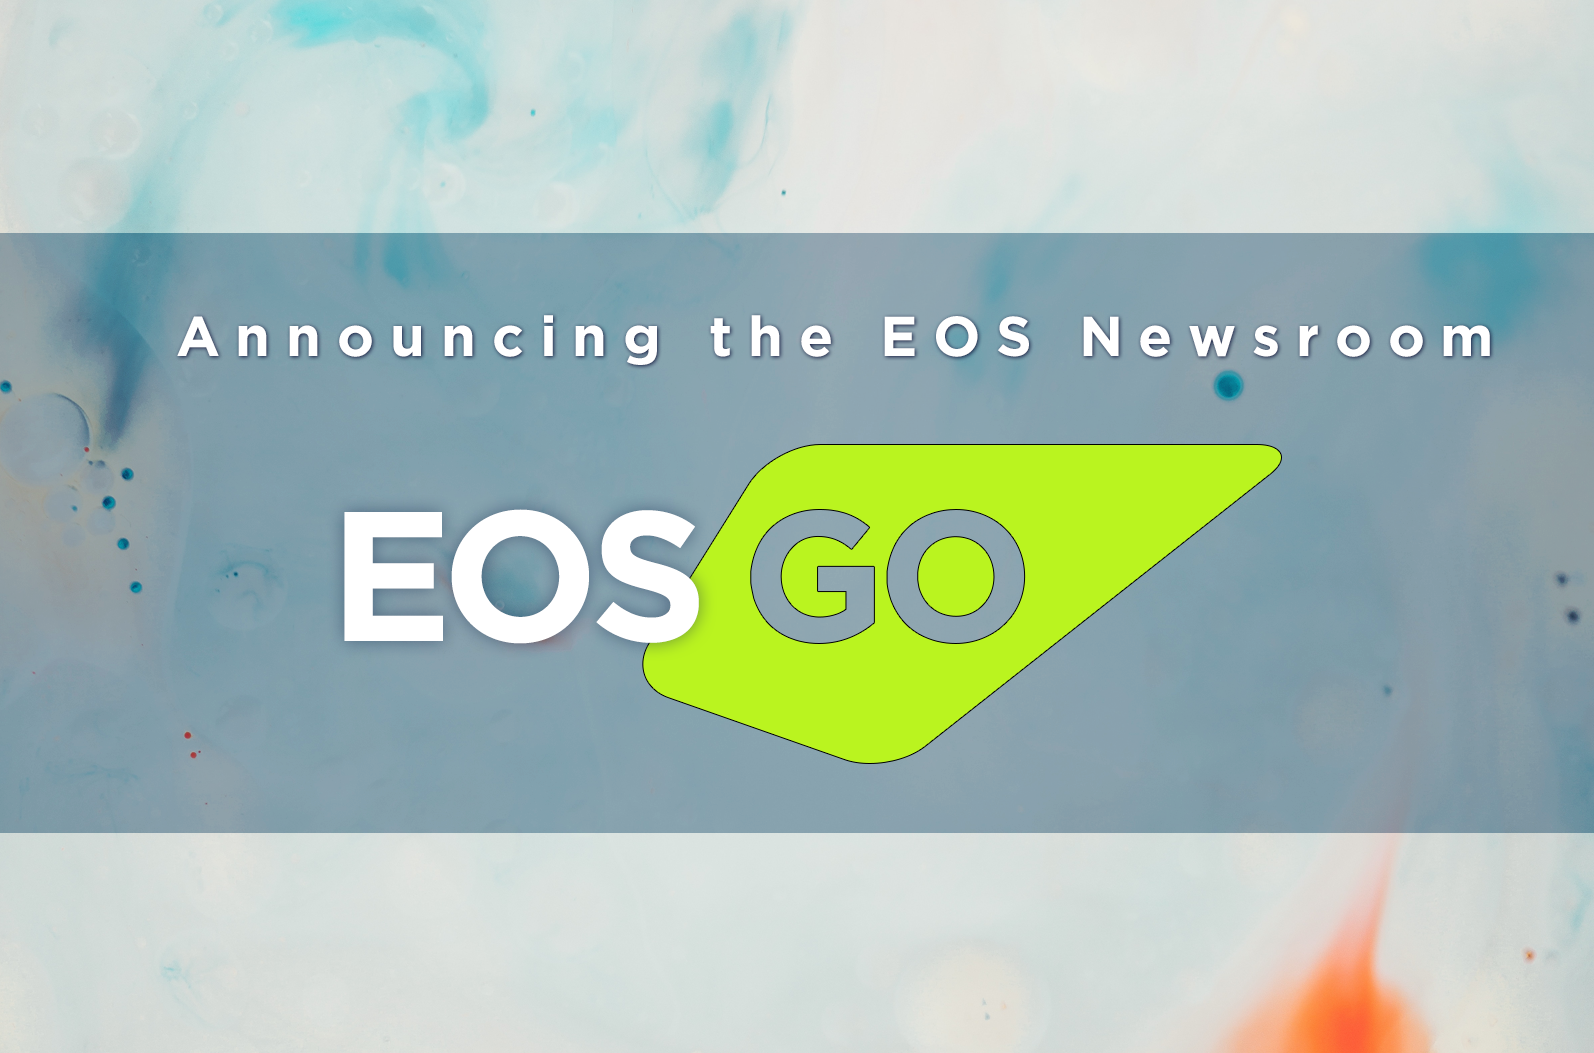 EOS Go News - Latest News and Coverage on EOSIO